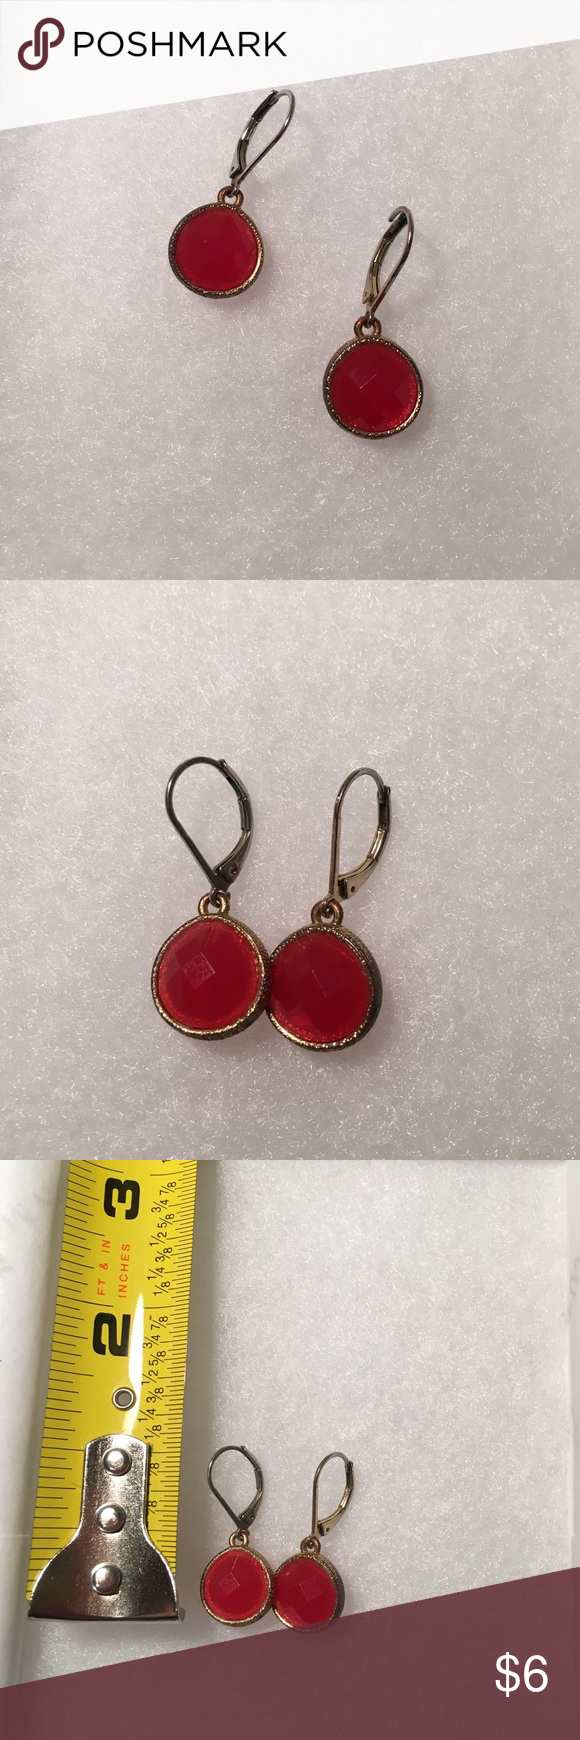 SALE Red Earrings Super cute earrings and worn a few times. Look great with anything and can be transitional. Has clasp backs attached. Charming Charlie Jewelry Earrings